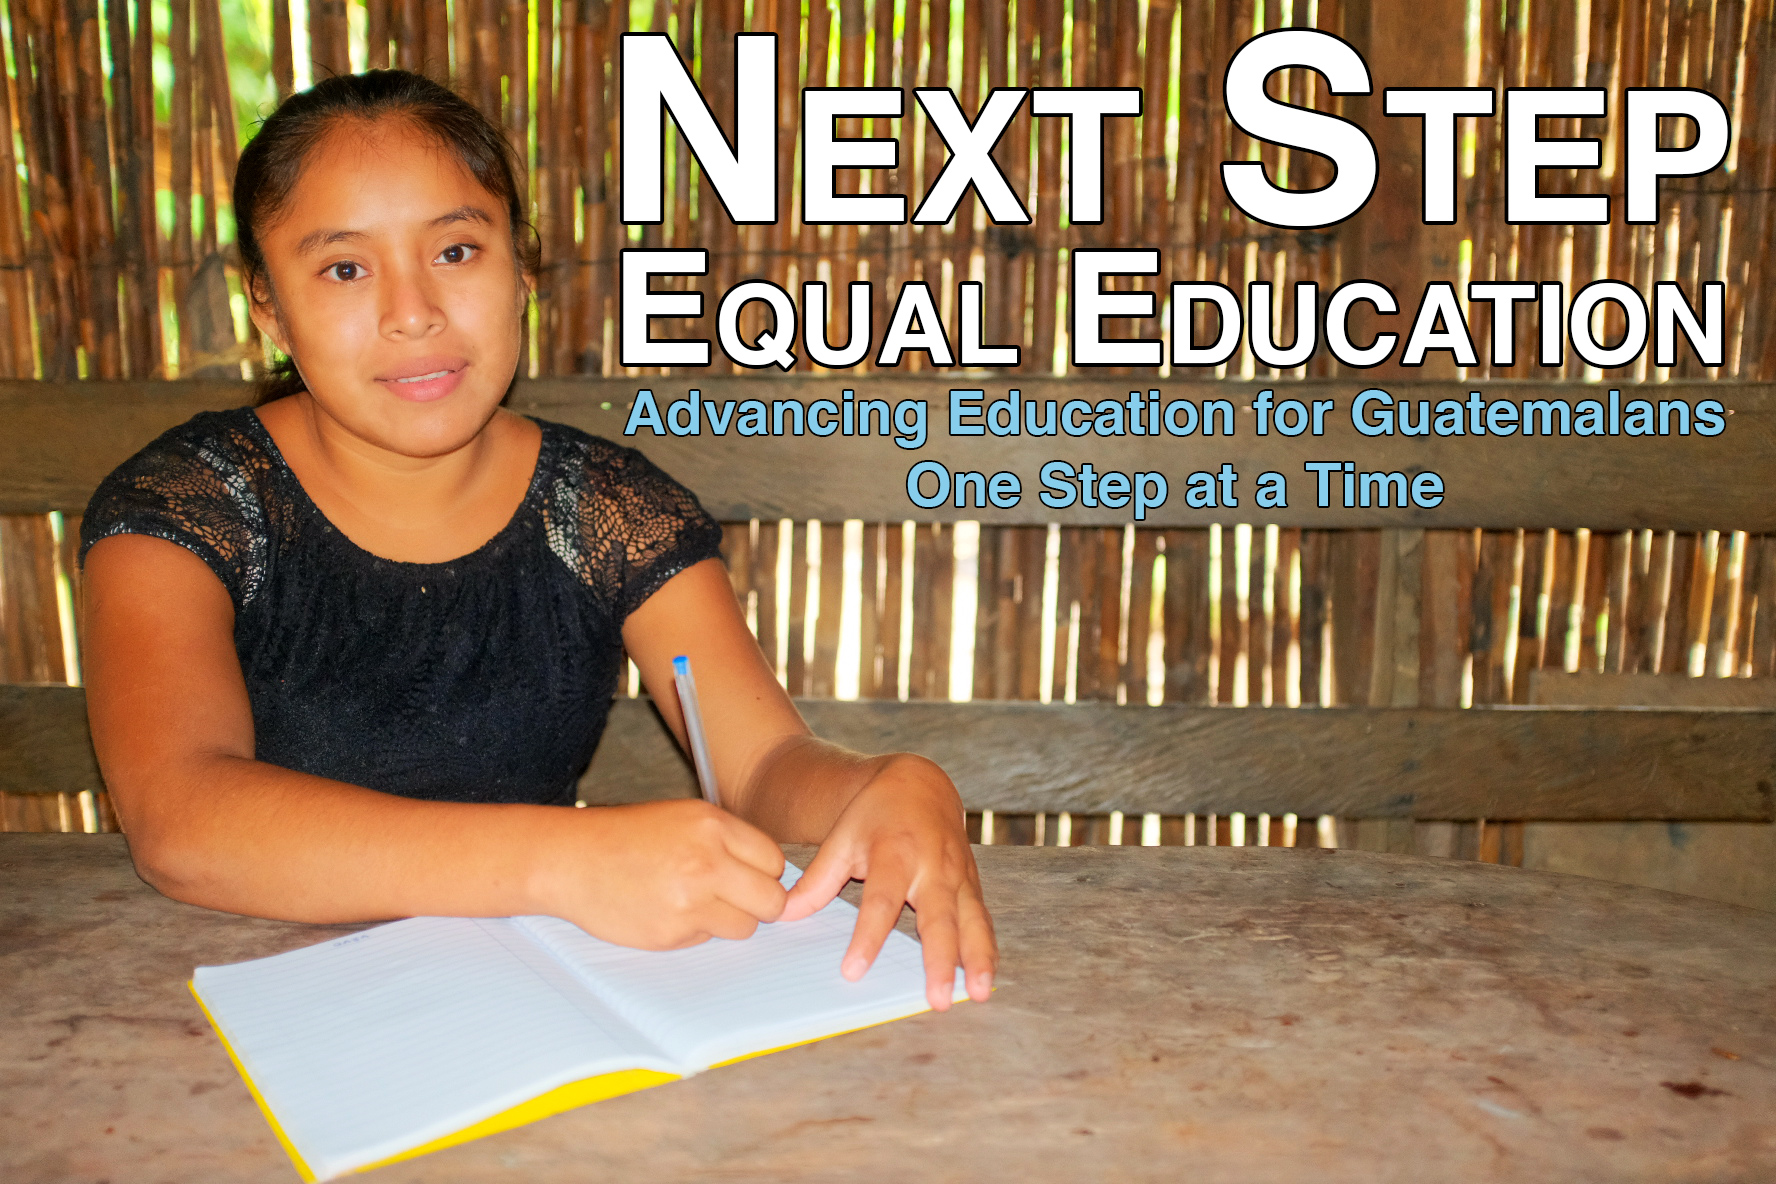 Next Step Equal Education